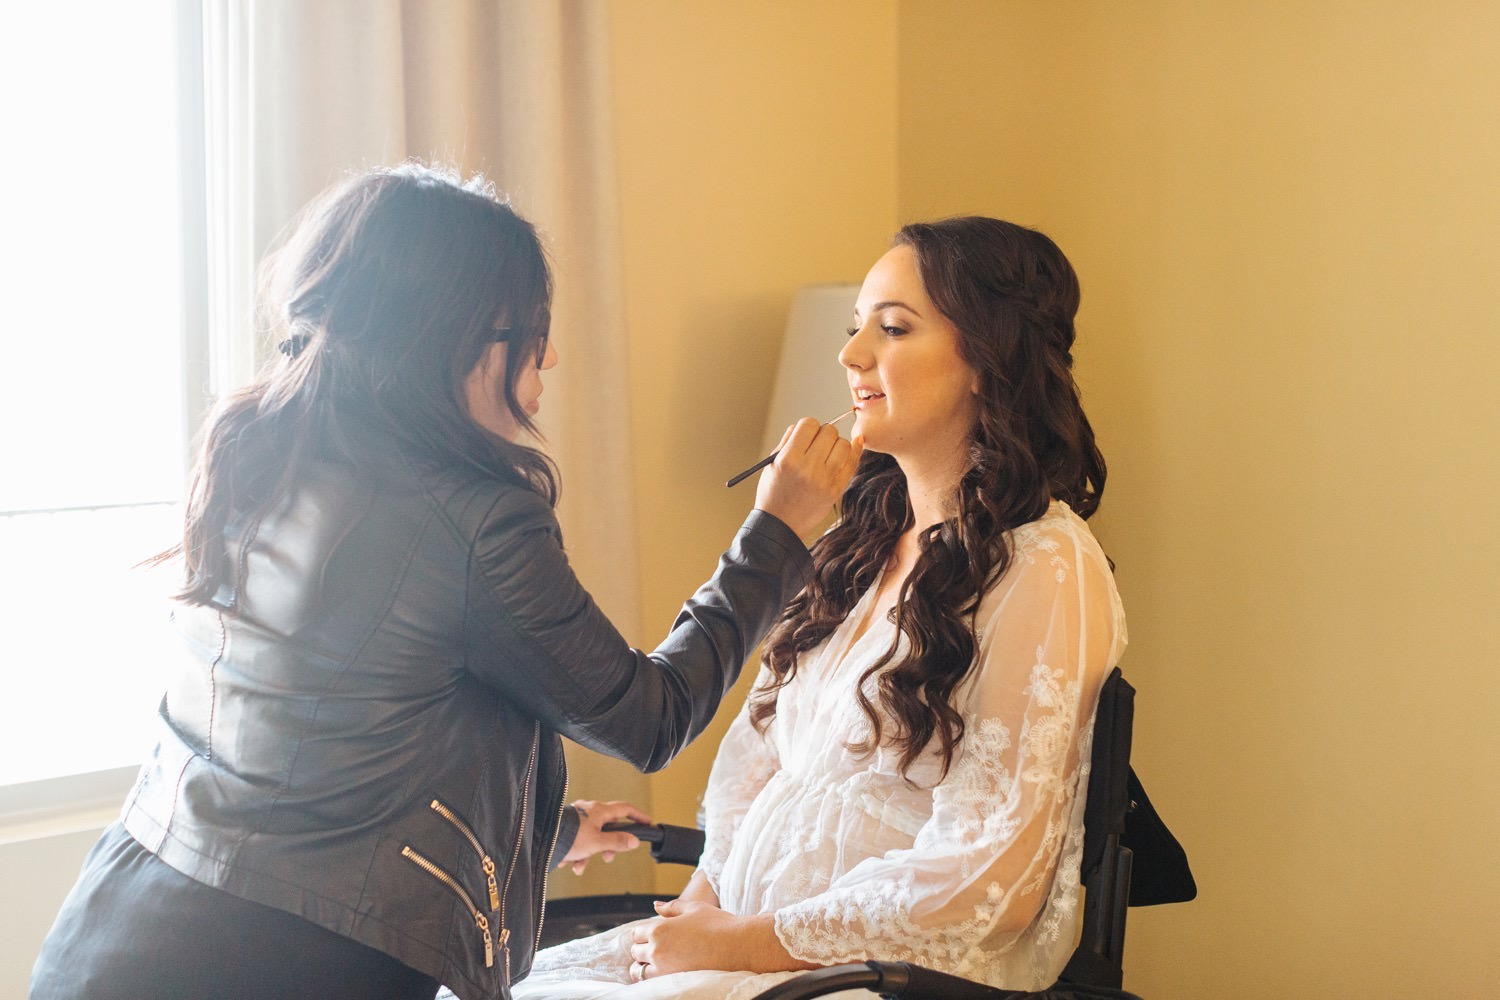 Bride getting ready for her wedding - Chino Hills Wedding at the Chino Hills Community Center - https://brittneyhannonphotography.com